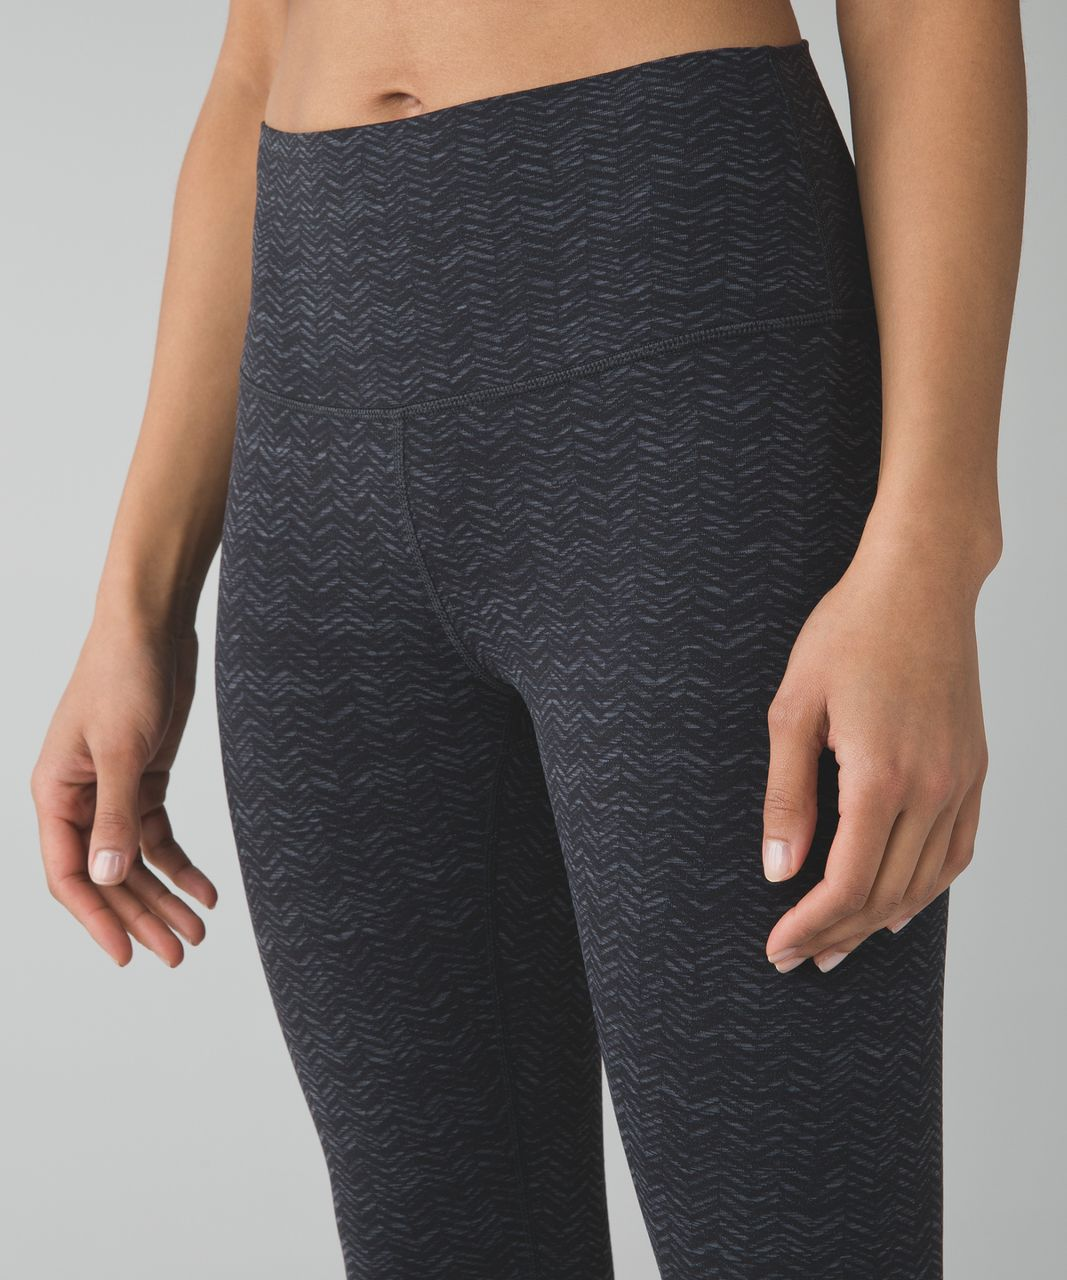 Lululemon High Times Pant - Irregular Spacebone Deep Coal Black